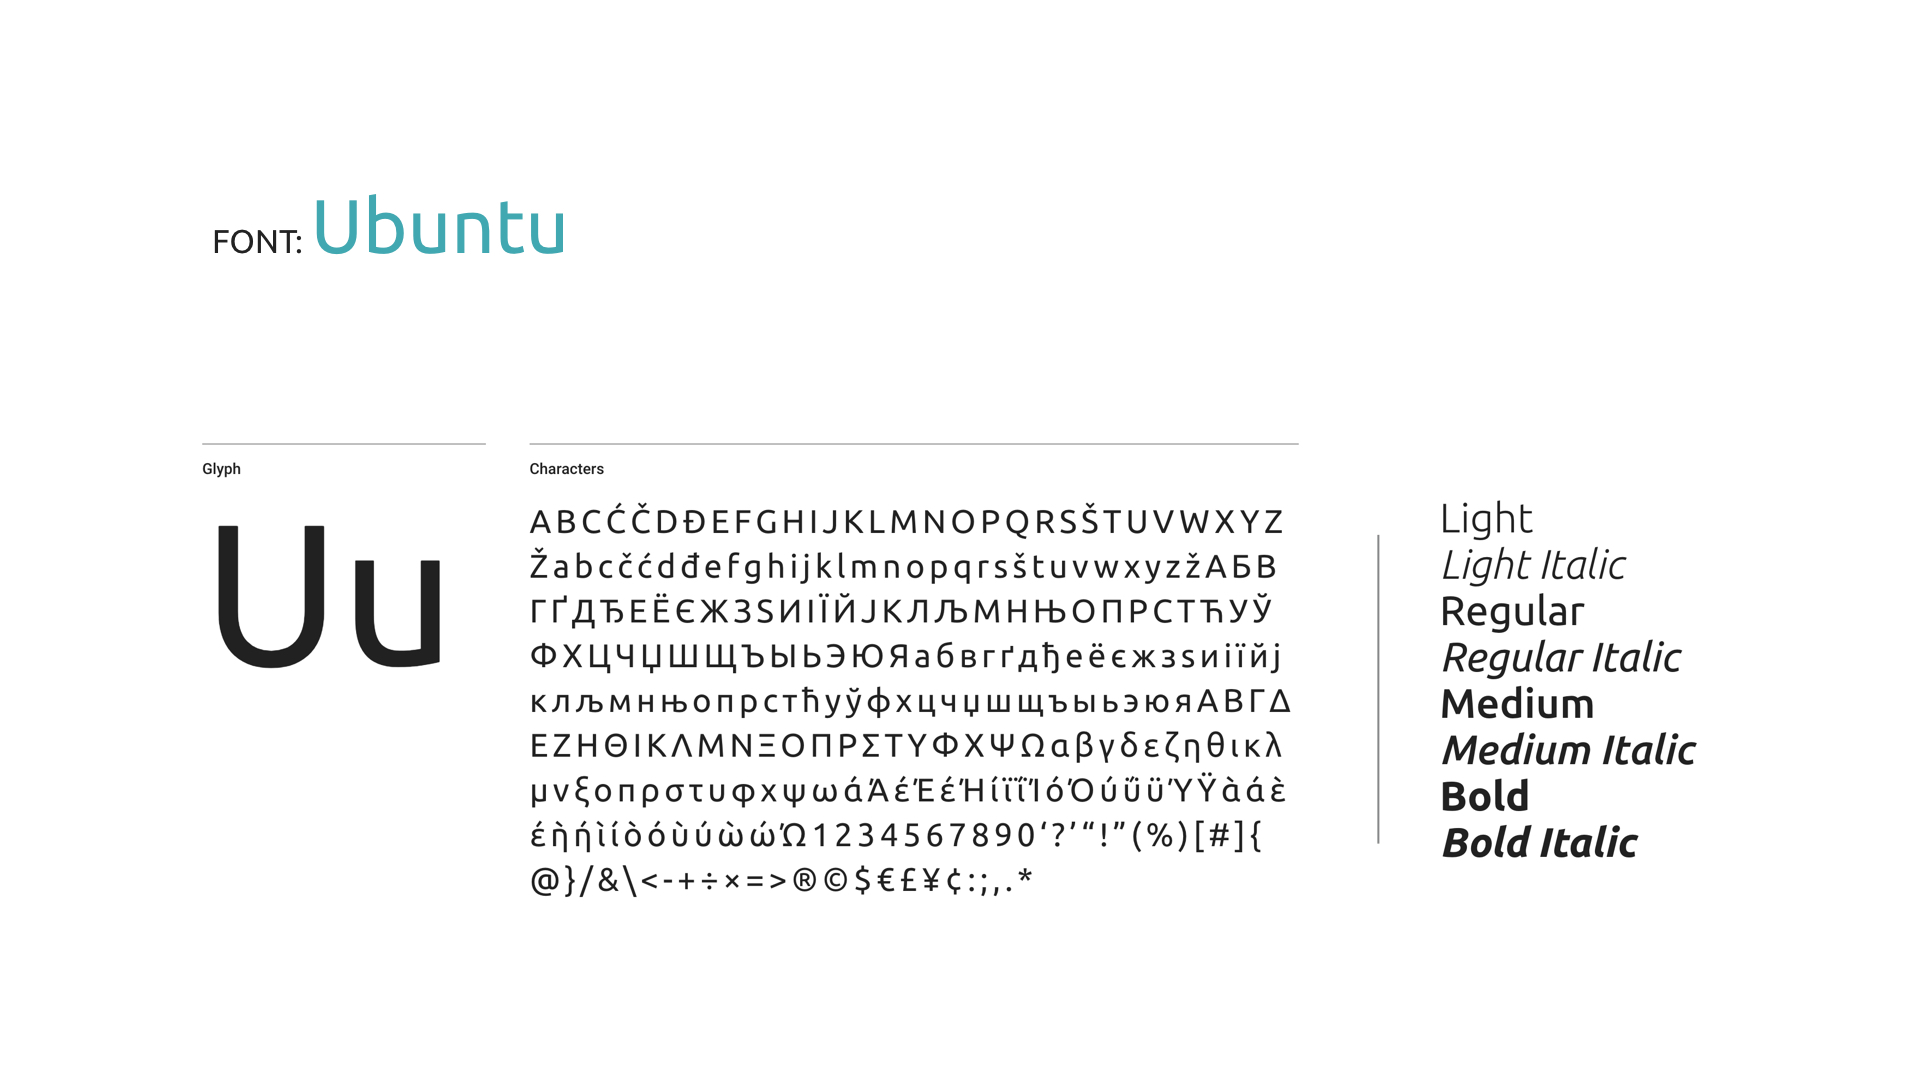 We decided to use Ubuntu for the font as there are both curves as well as sharp edges, just like our design elements.